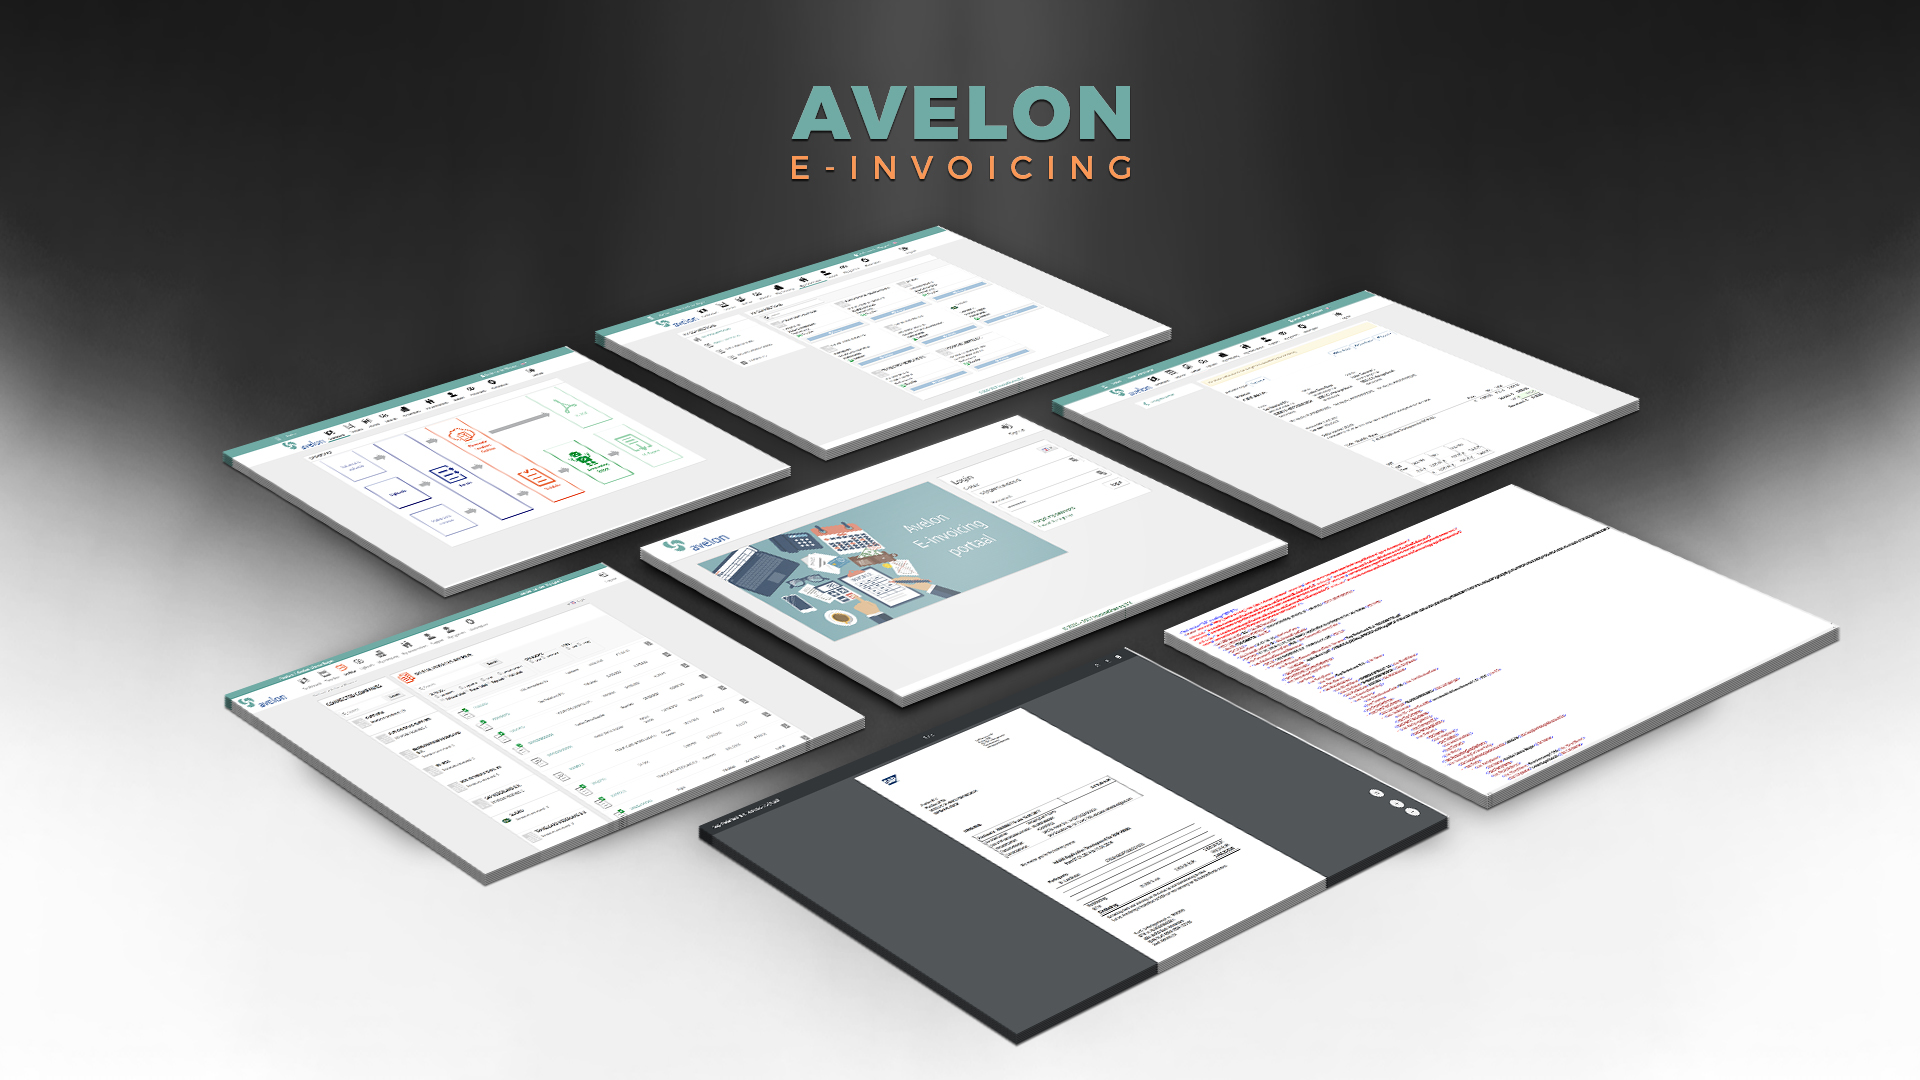 Avelon SAP E-invoicing